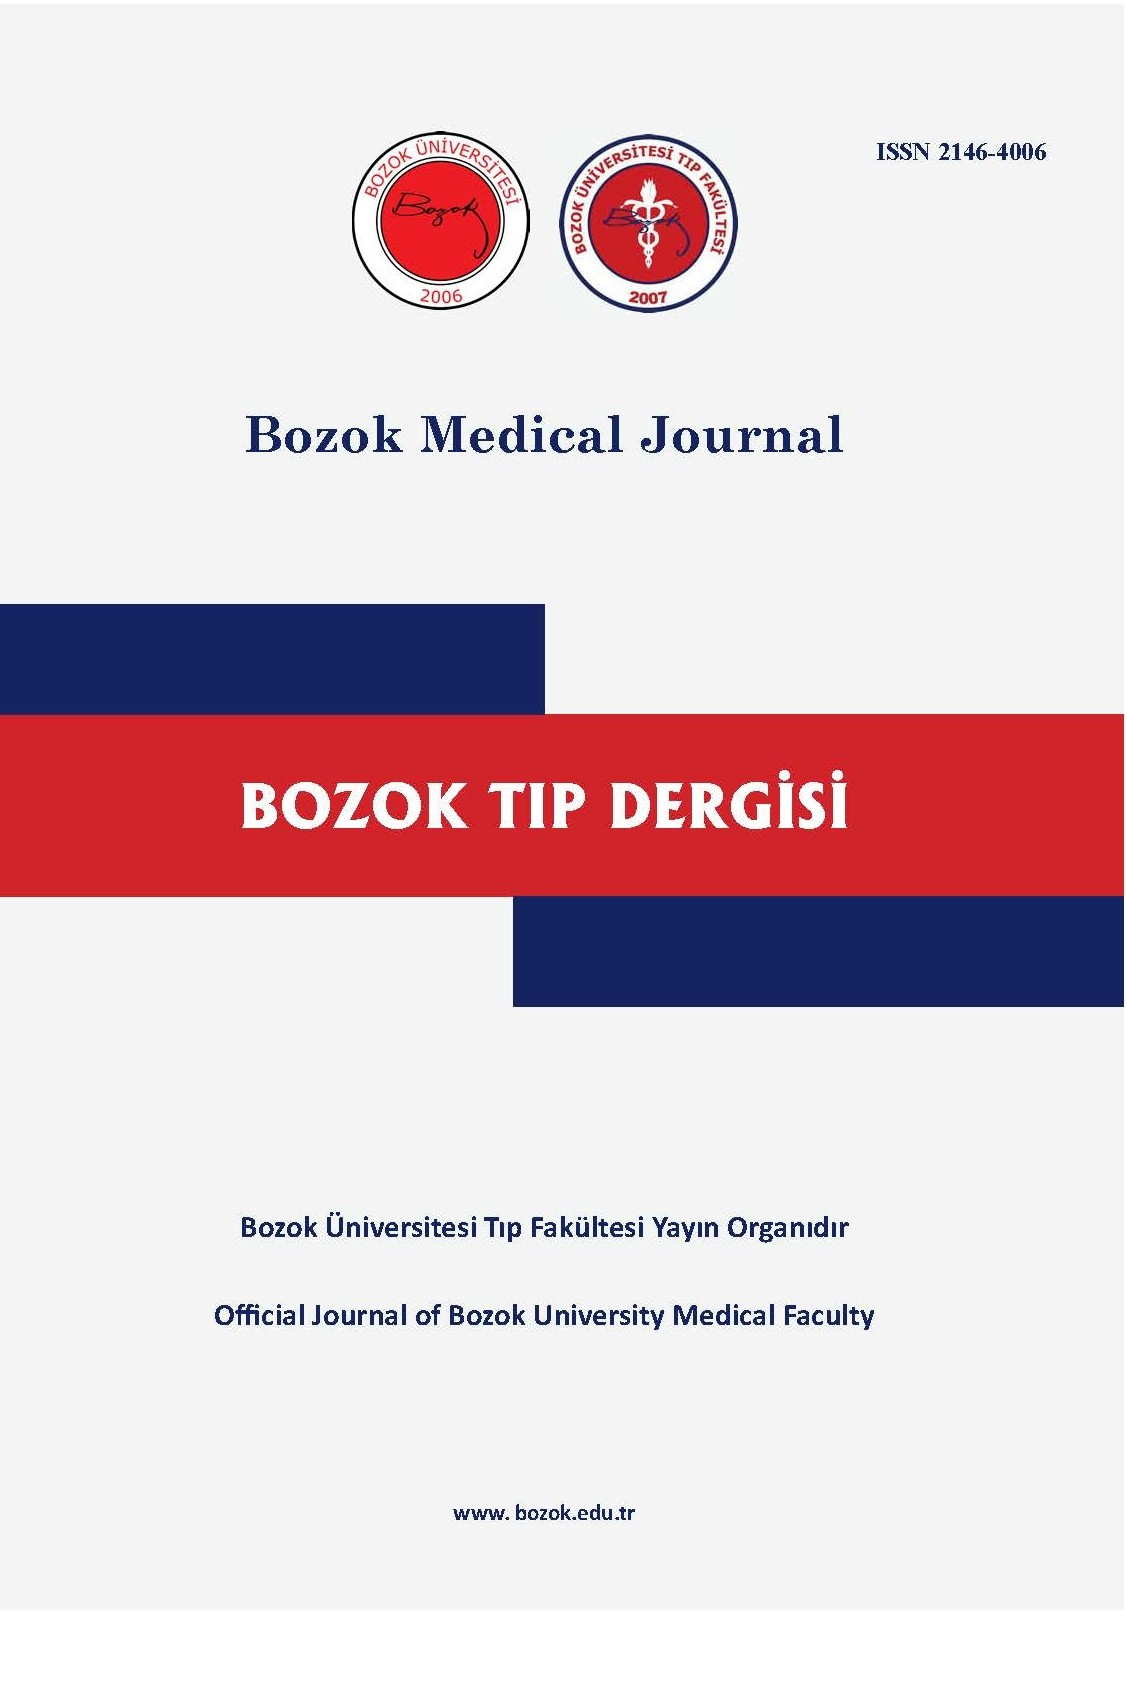 Bozok Medical Journal